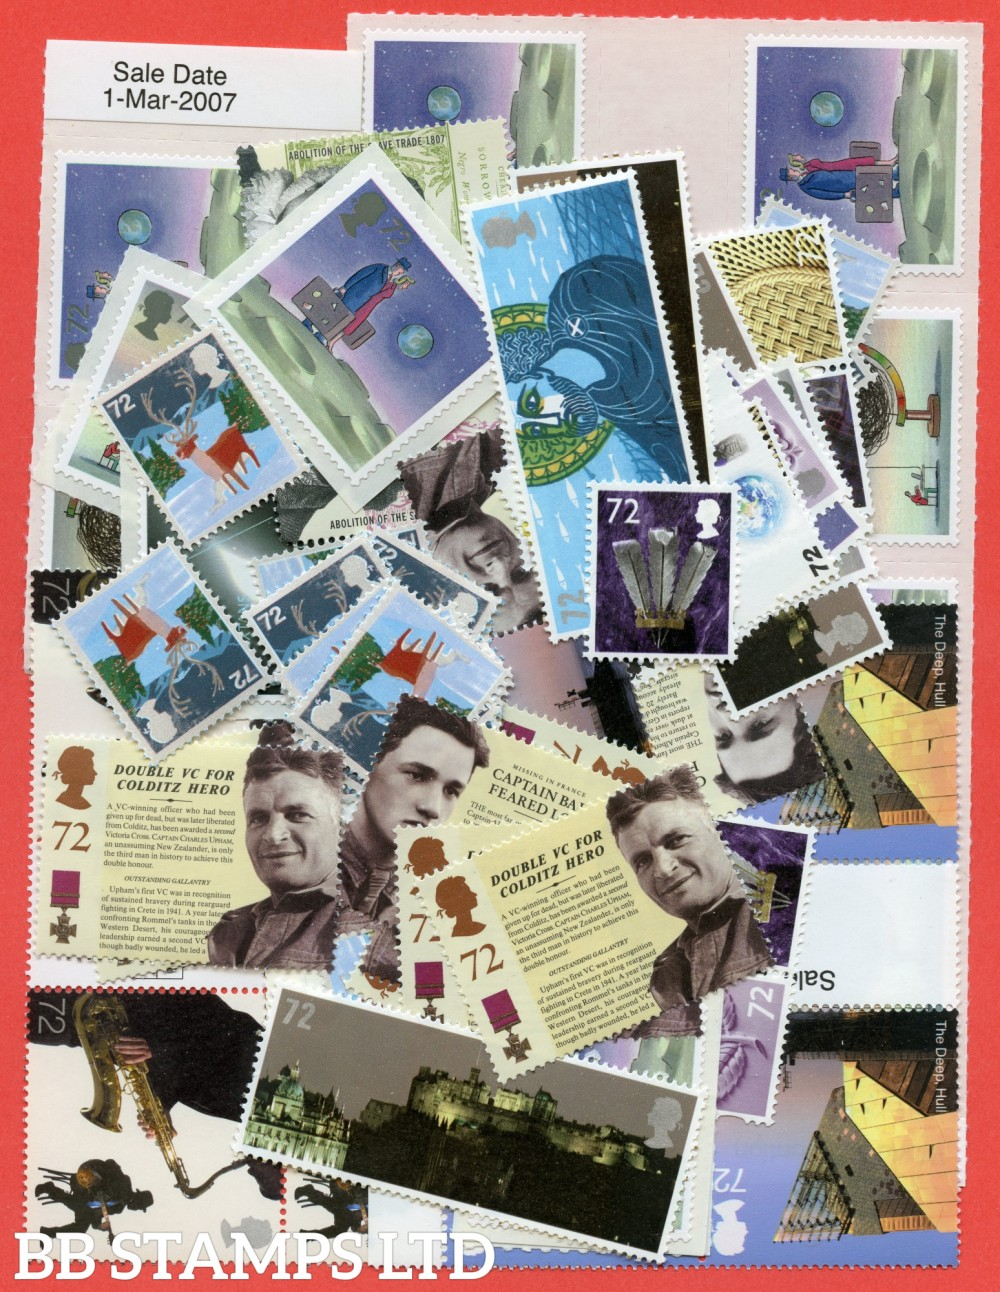 100 x 72p stamps. All of our postage lots are genuine mint stamps with gum and have never been used as postage.